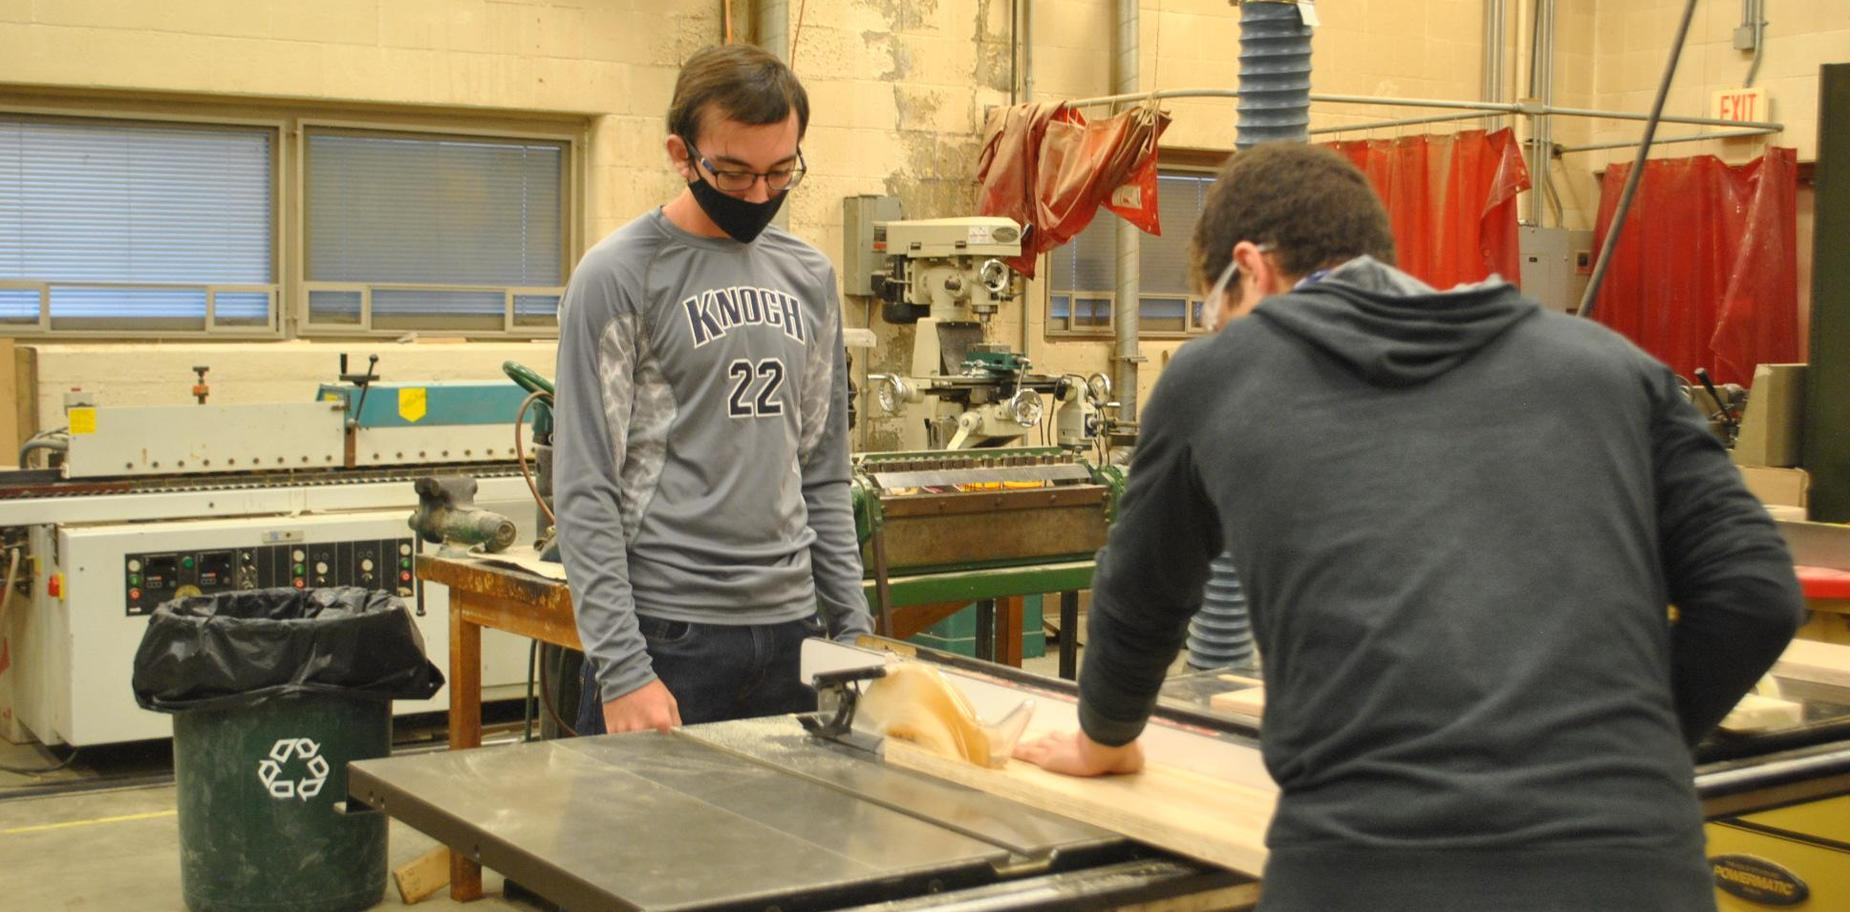 Tech Ed students using saw